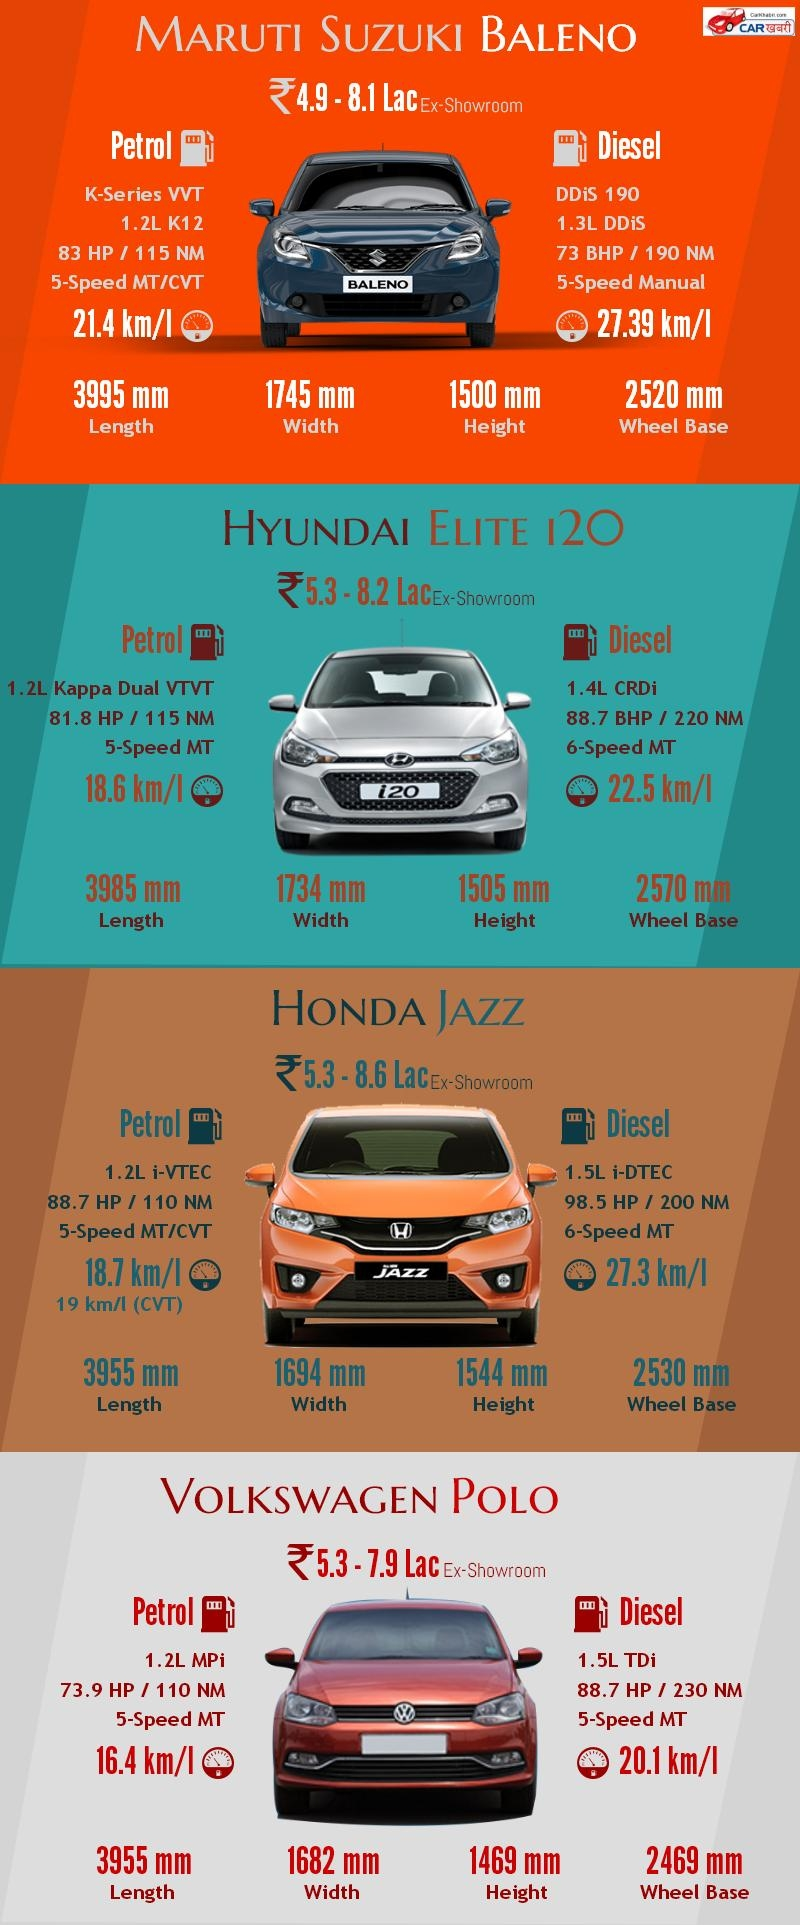 Maruti Baleno vs Elite i20 vs Honda Jazz vs VW Polo